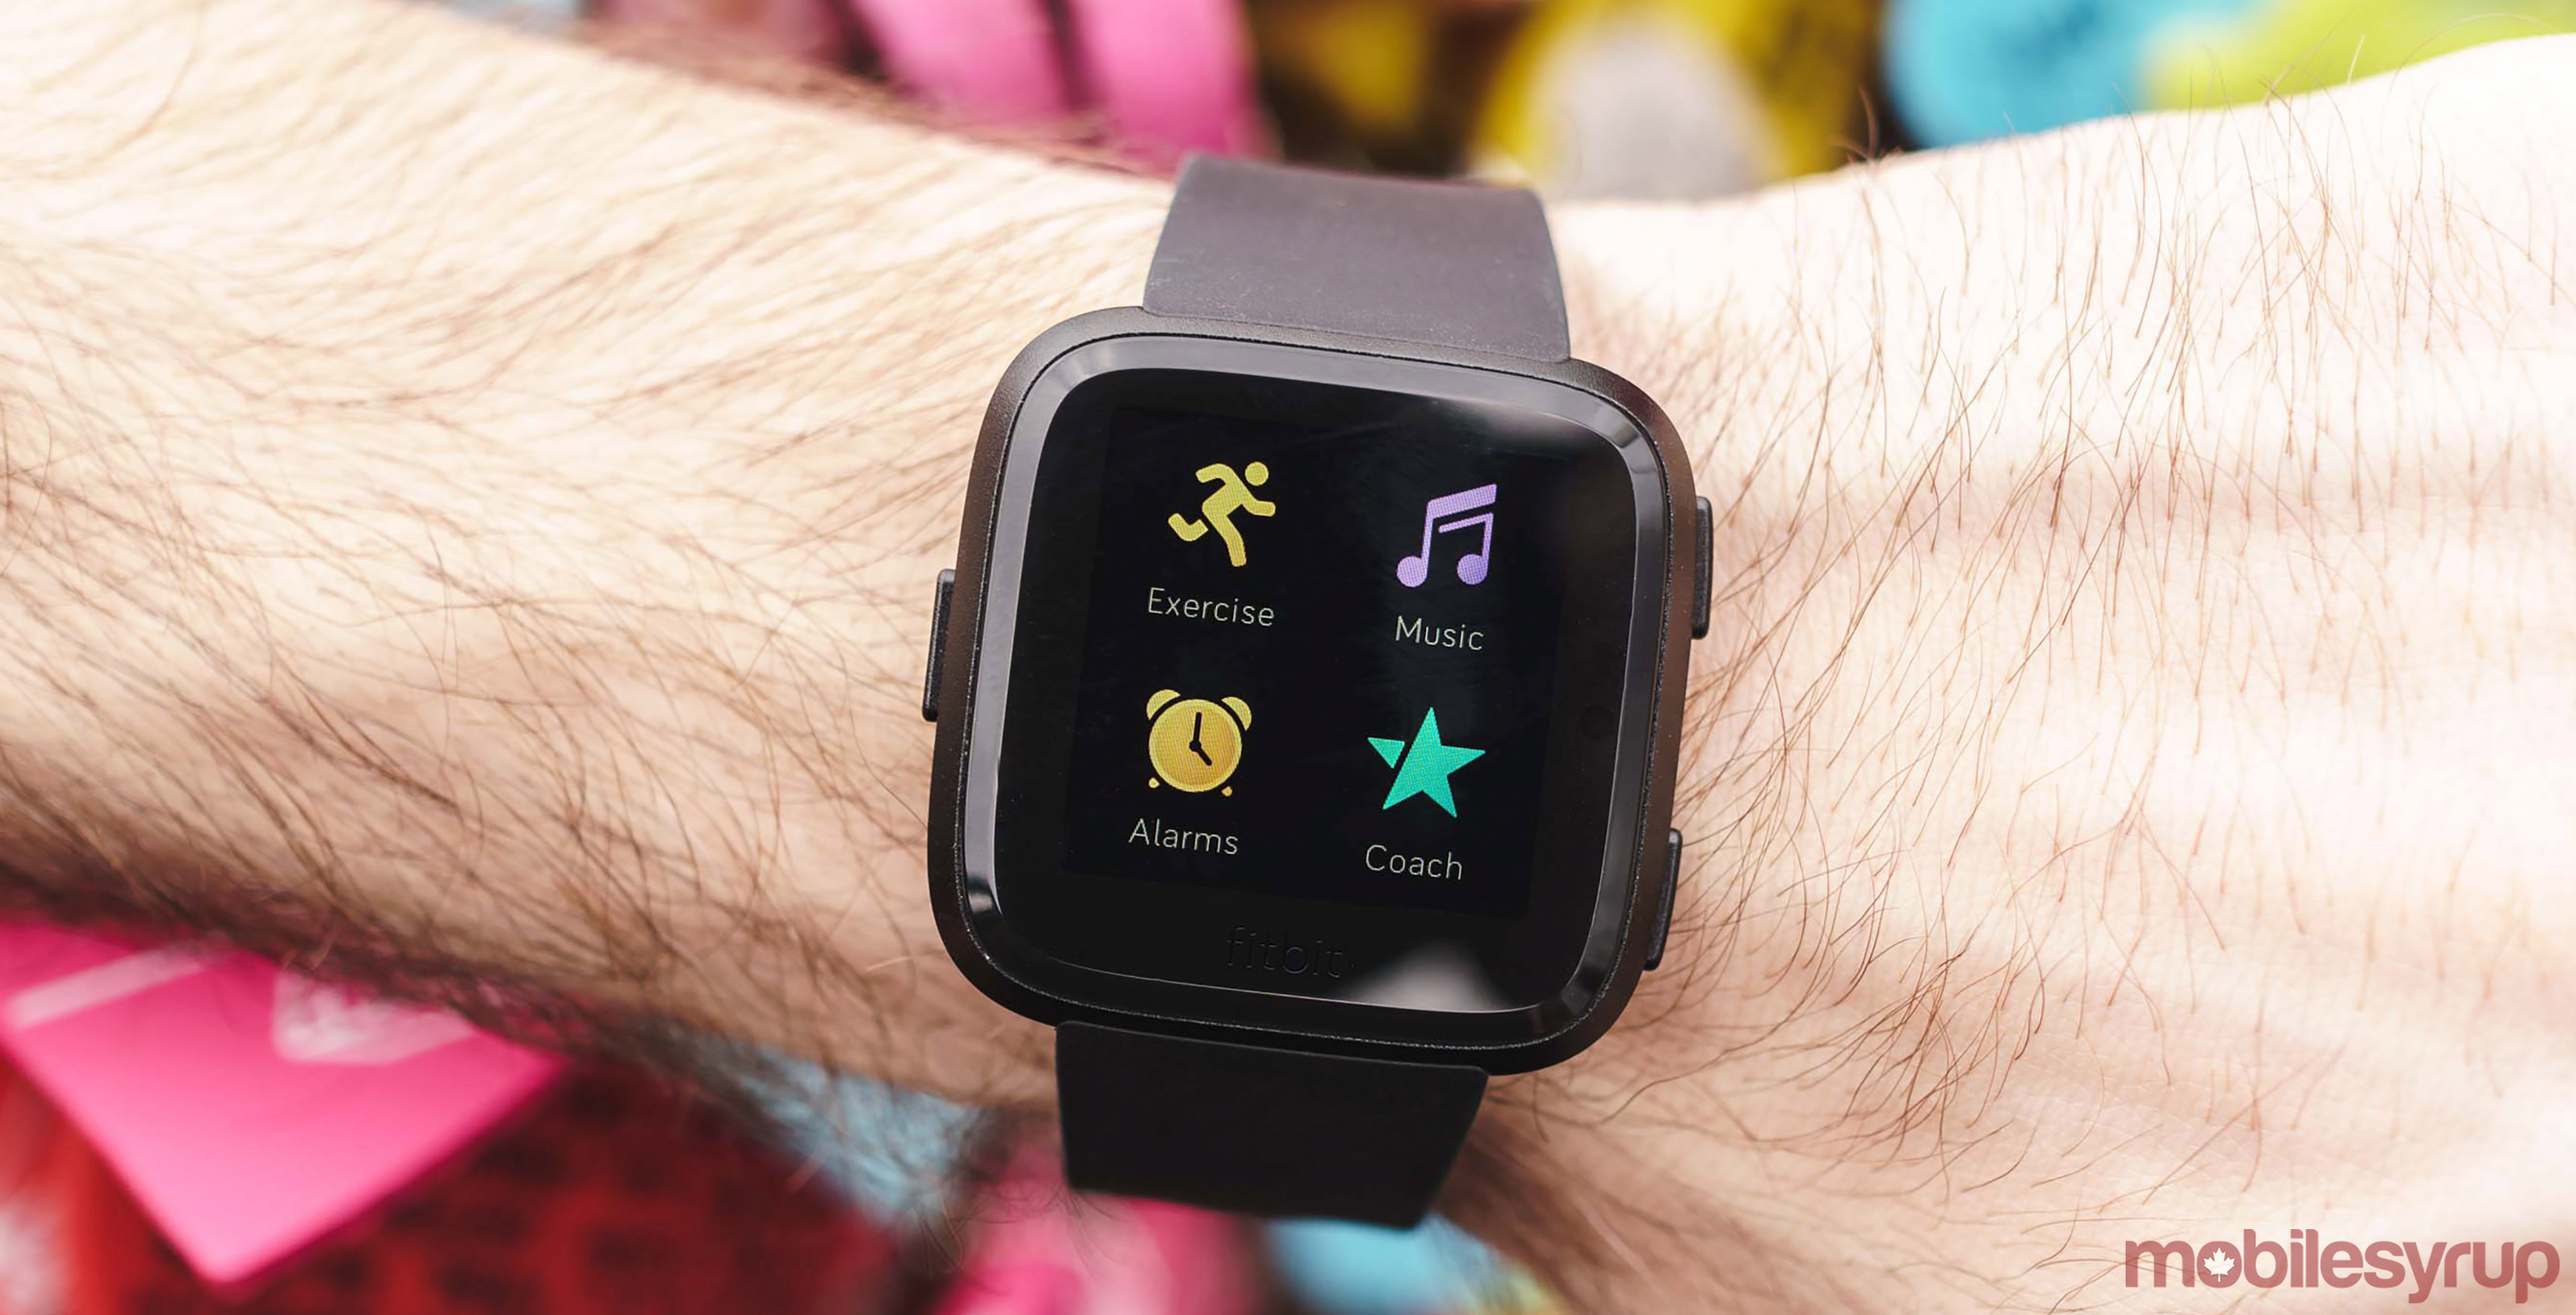 Up to date | Fitbit and Snapchat just teamed up to make fitness a bit